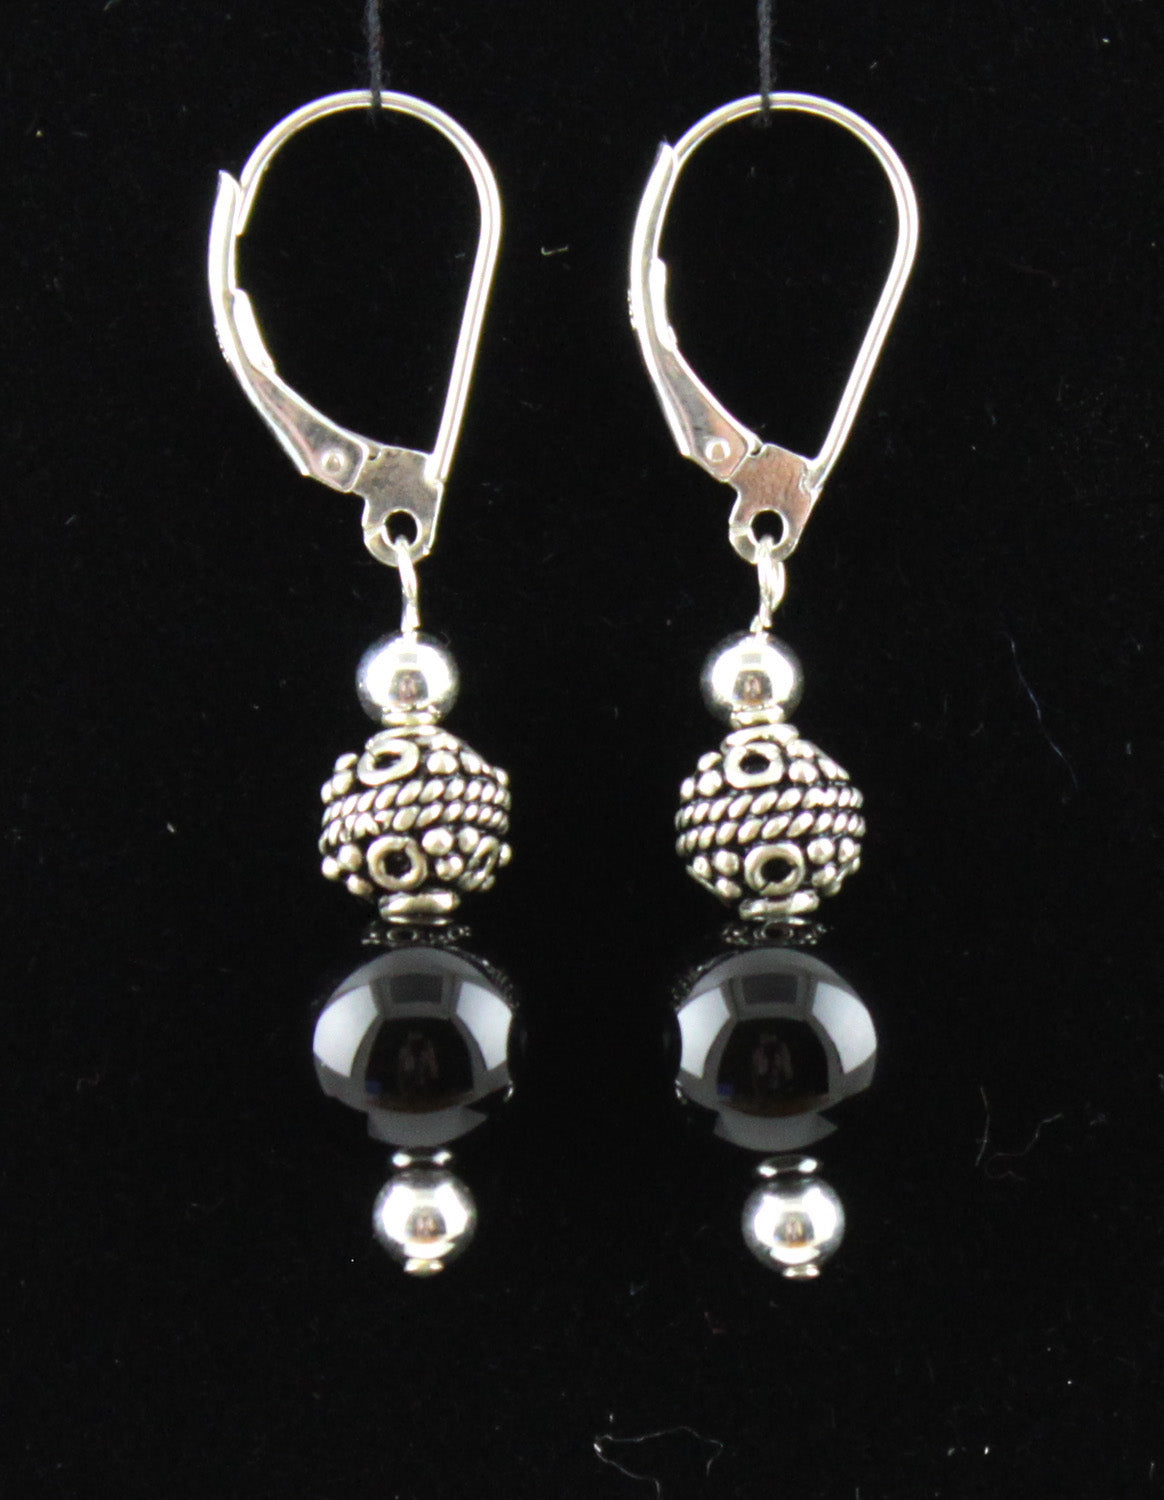 Bali Bead & Black Onyx Earrings